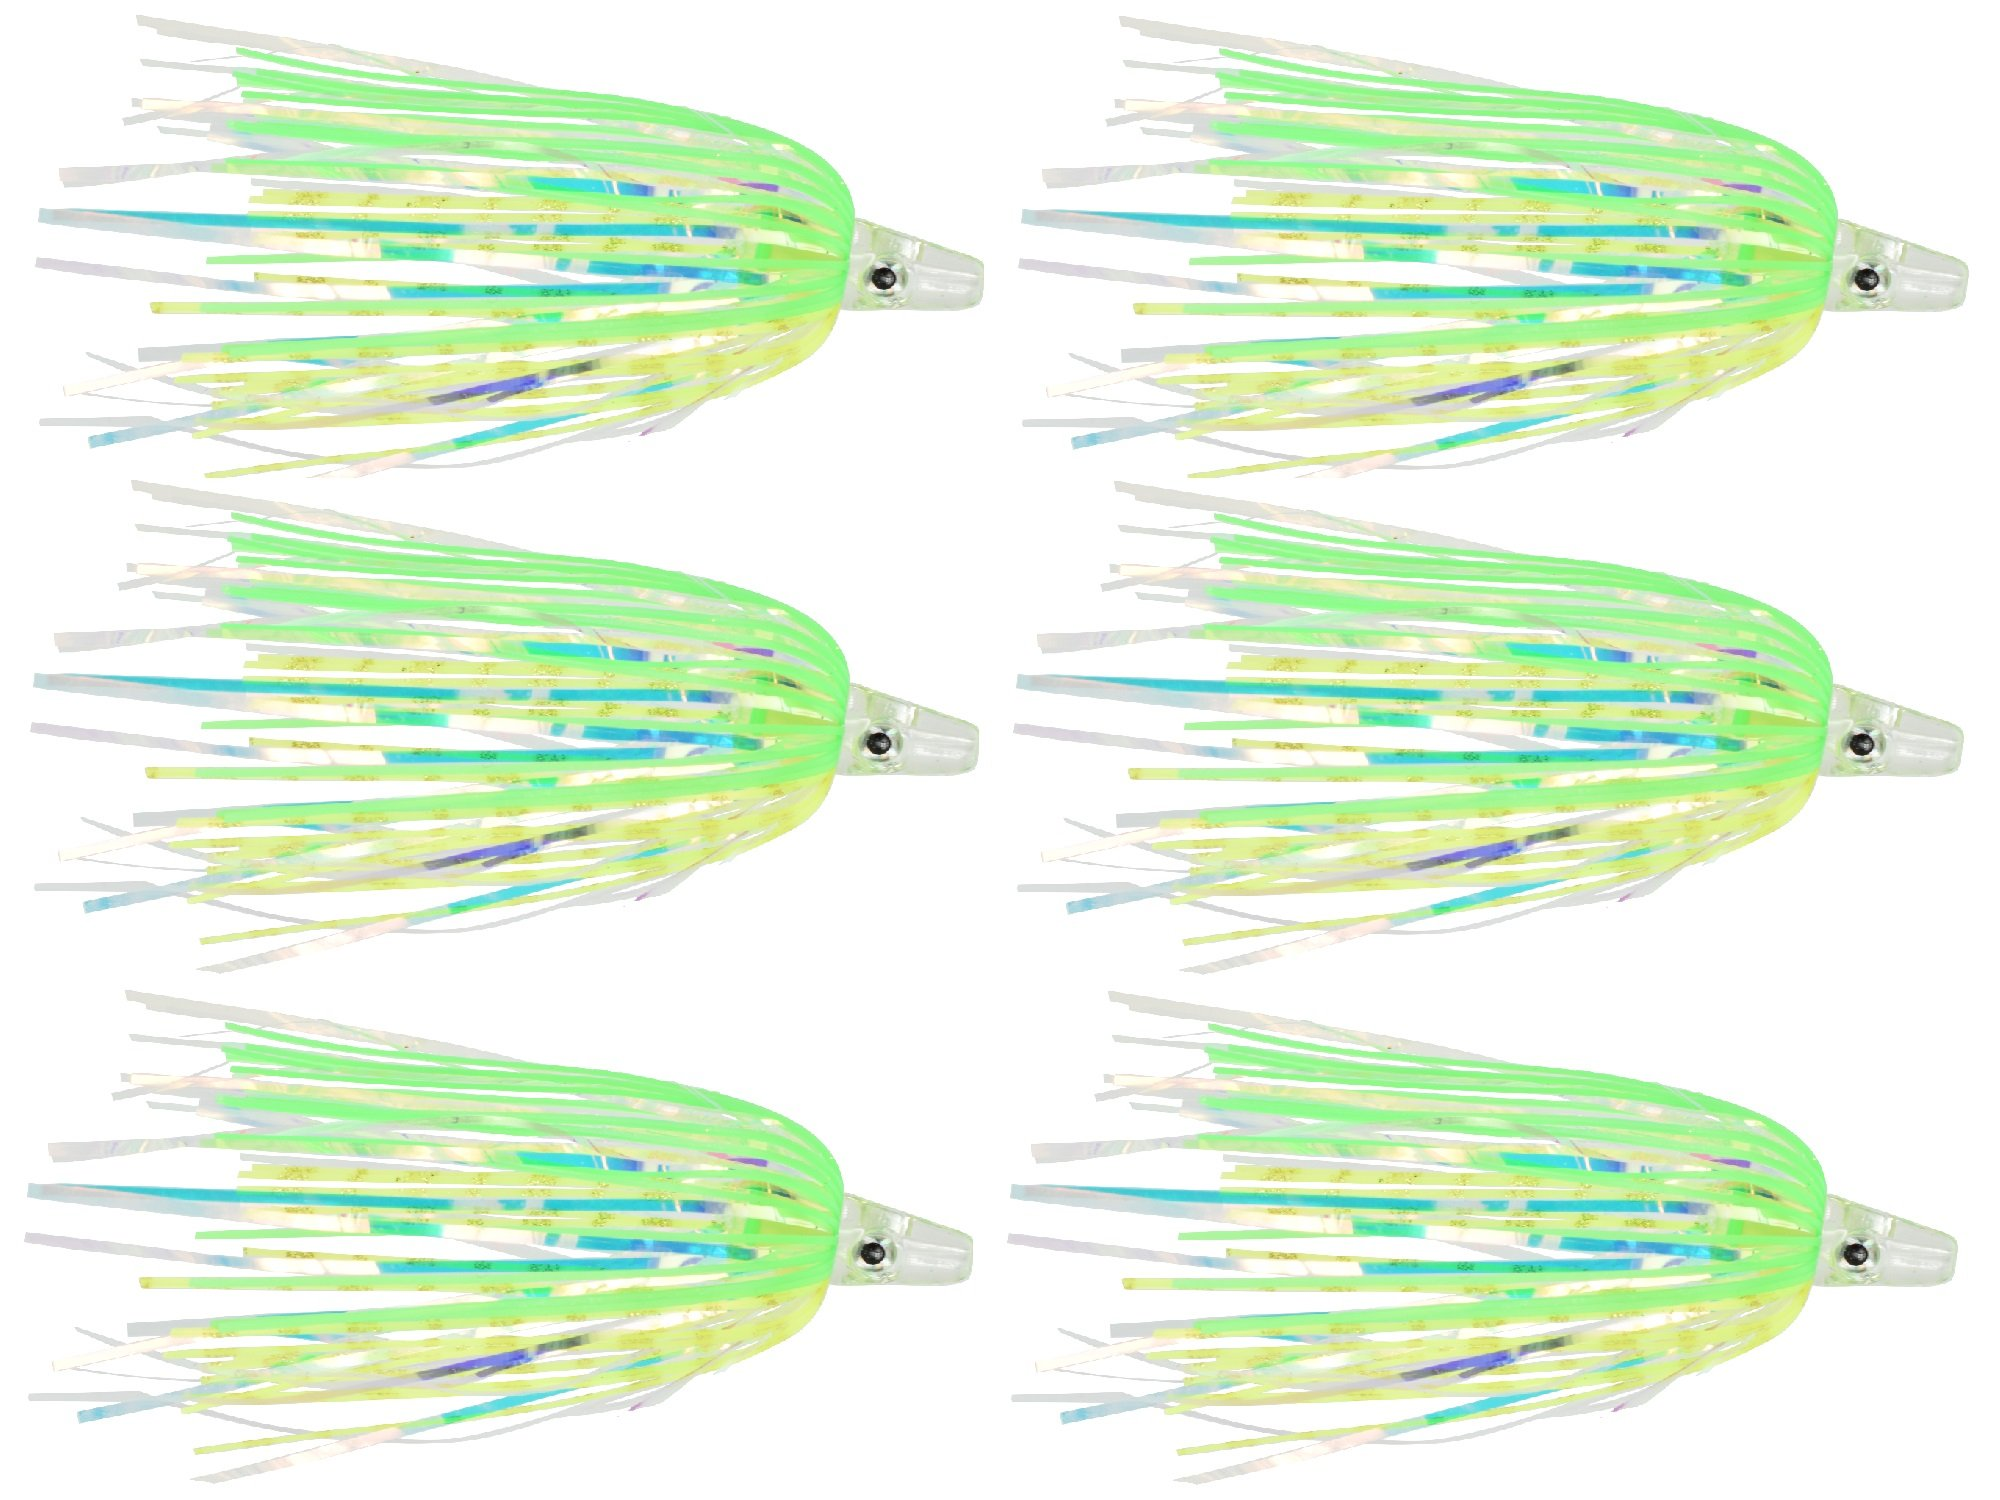 Last Cast Tackle Silicone Holo Teaser - 6 Pack - 5 Colors to Choose from (Green/Yellow) by Last Cast Tackle